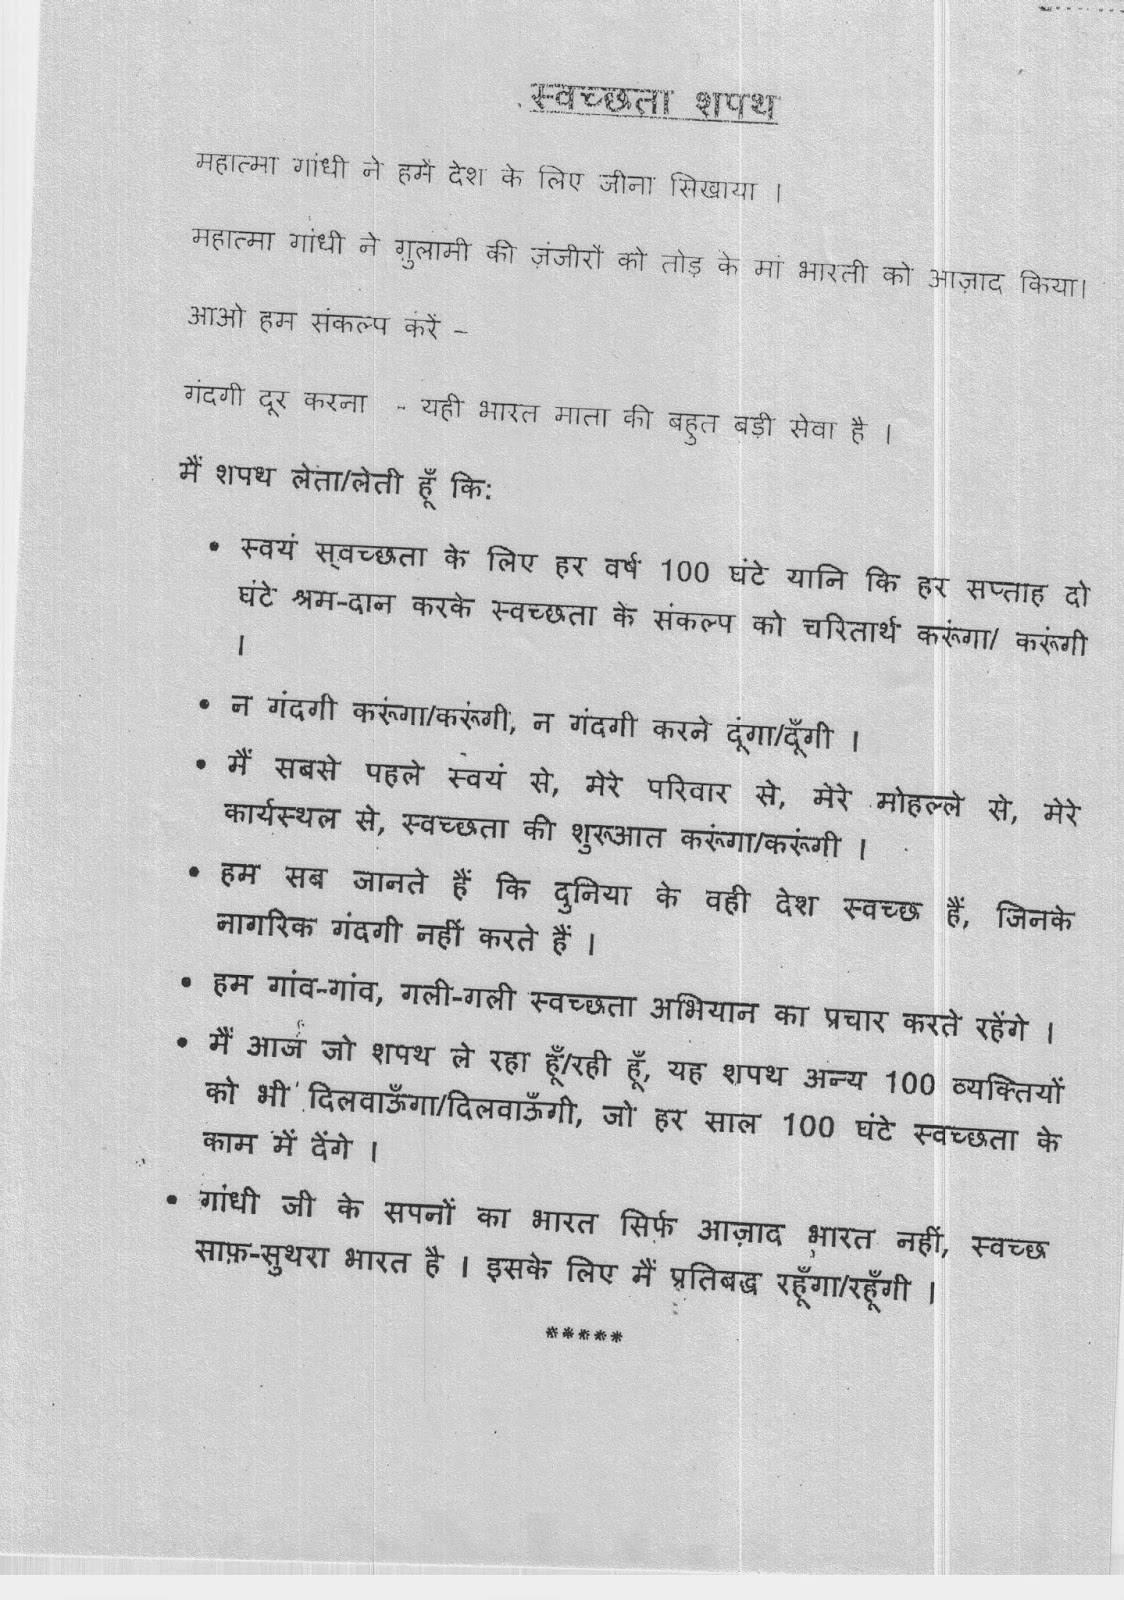 Hamara pyara bharat varsh essay in hindi